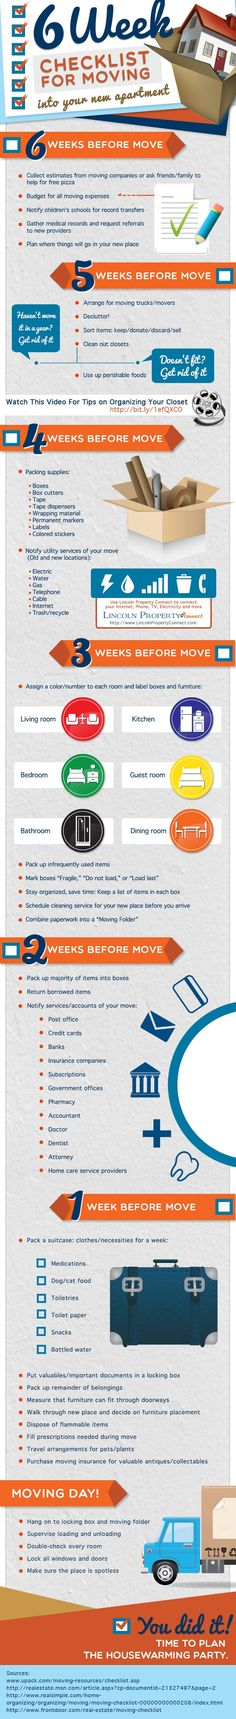 6 week checklist for moving #moving